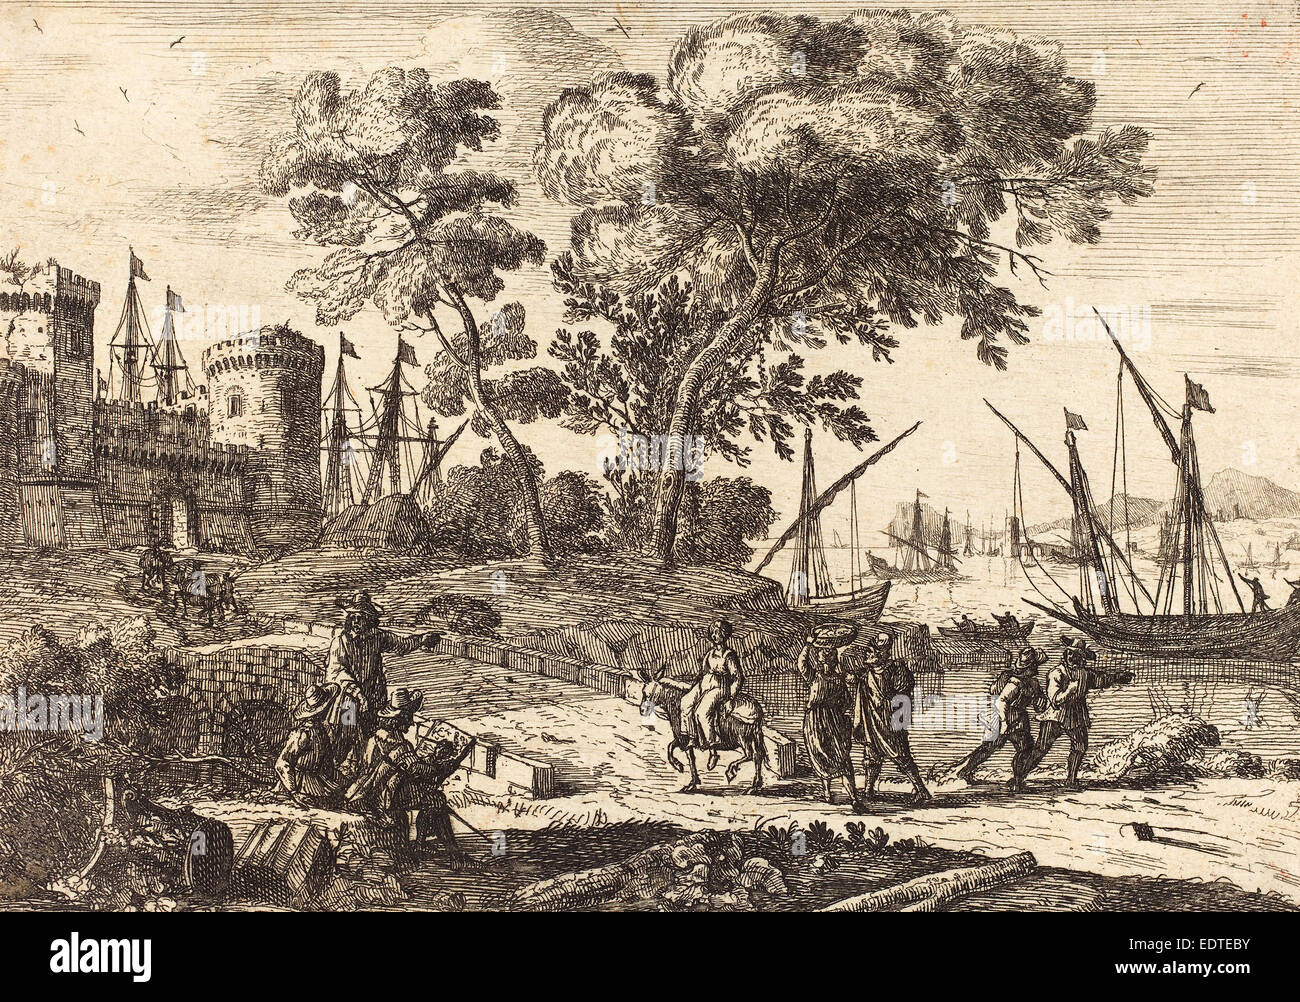 Claude Lorrain (French, 1604-1605 - 1682), Coast Scene with an Artist (Le dessinateur), c. 1638-1641, etching - Stock Image